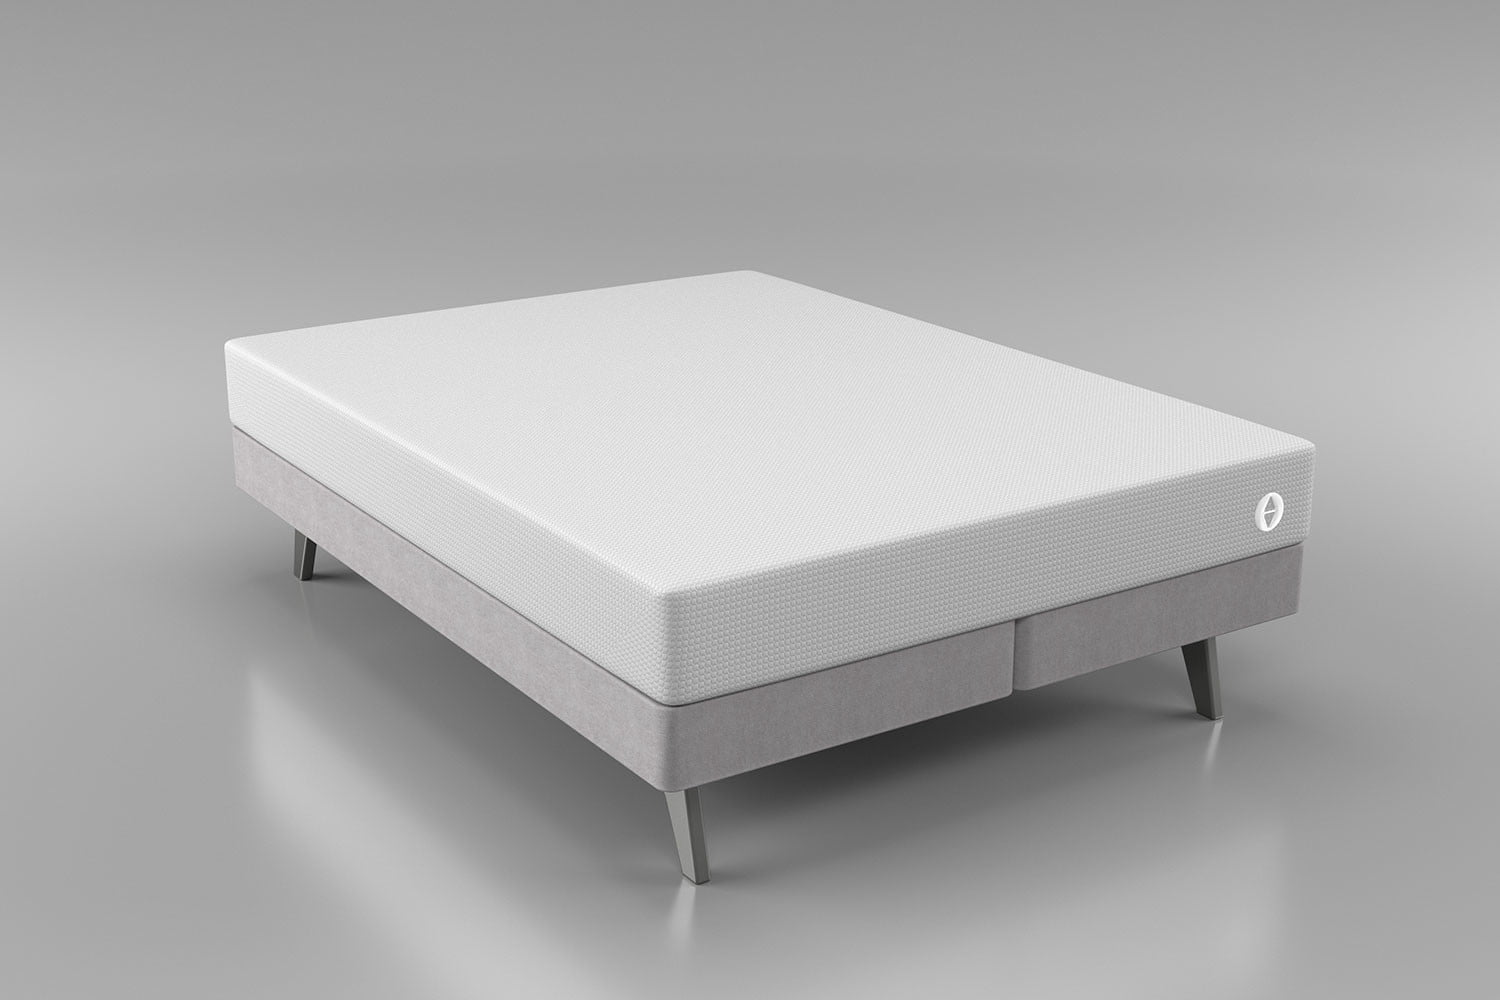 sleep number introduces the it bed at ces 2016 itbedstill 4k grey